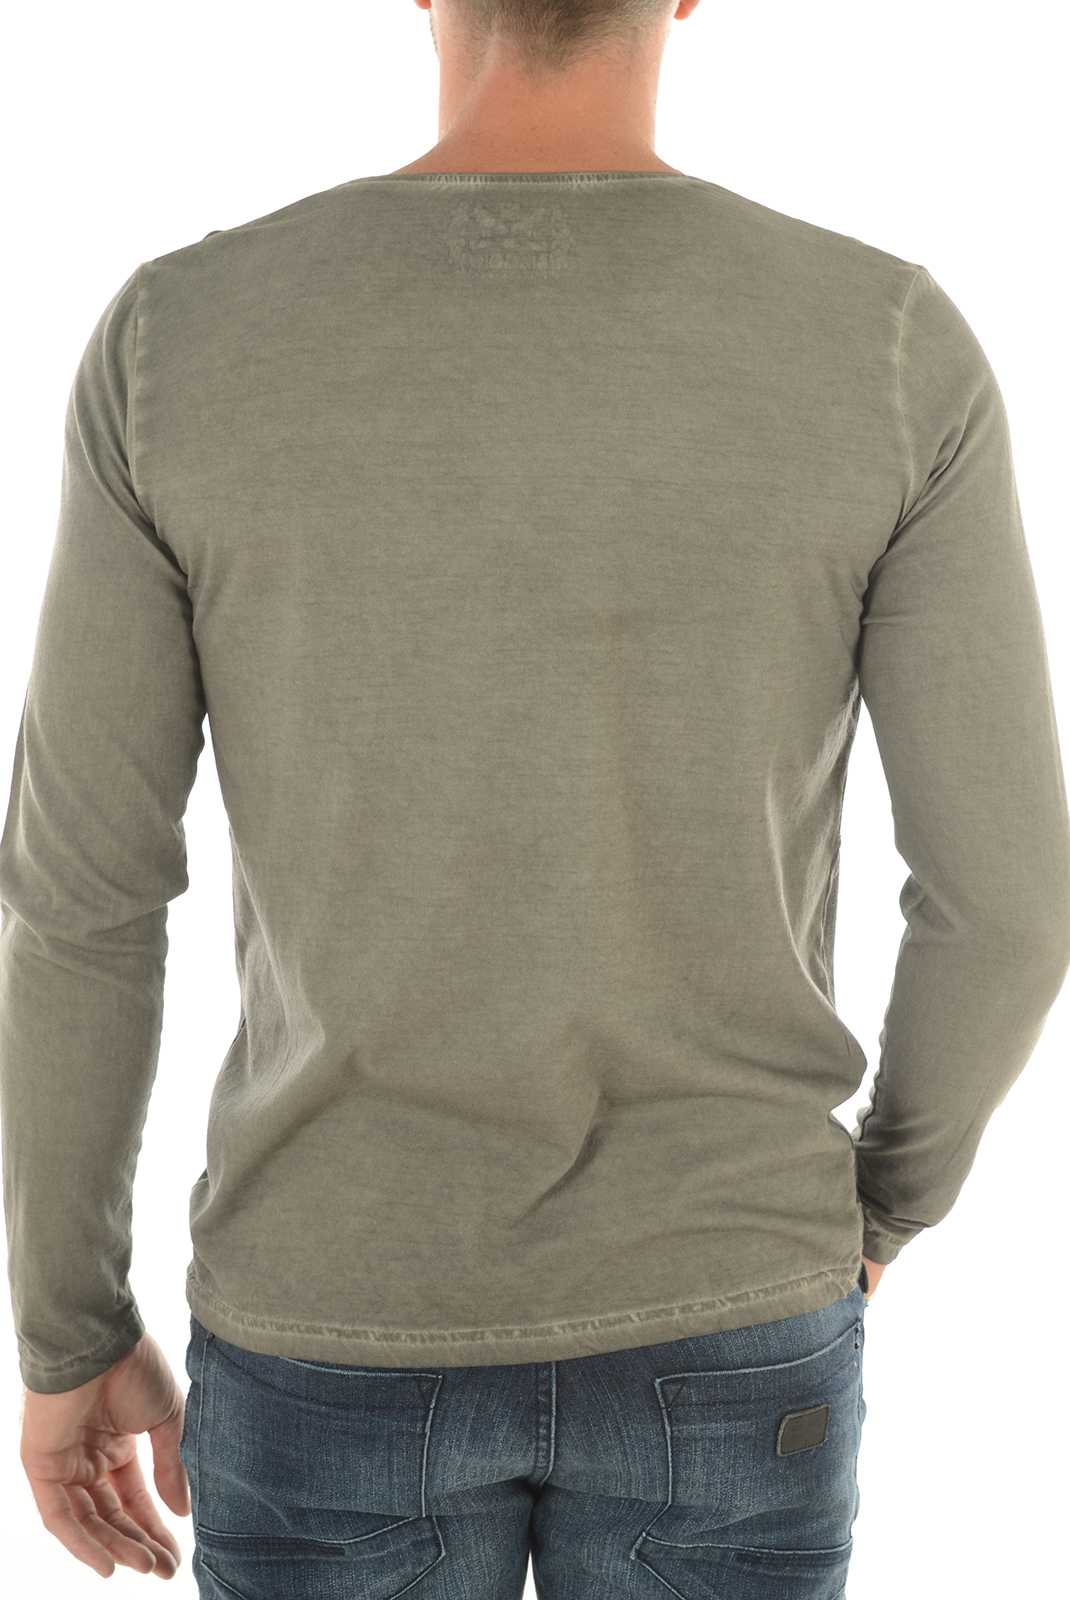 Tee-shirts  Biaggio jeans LACTANIL GRIS FONCE